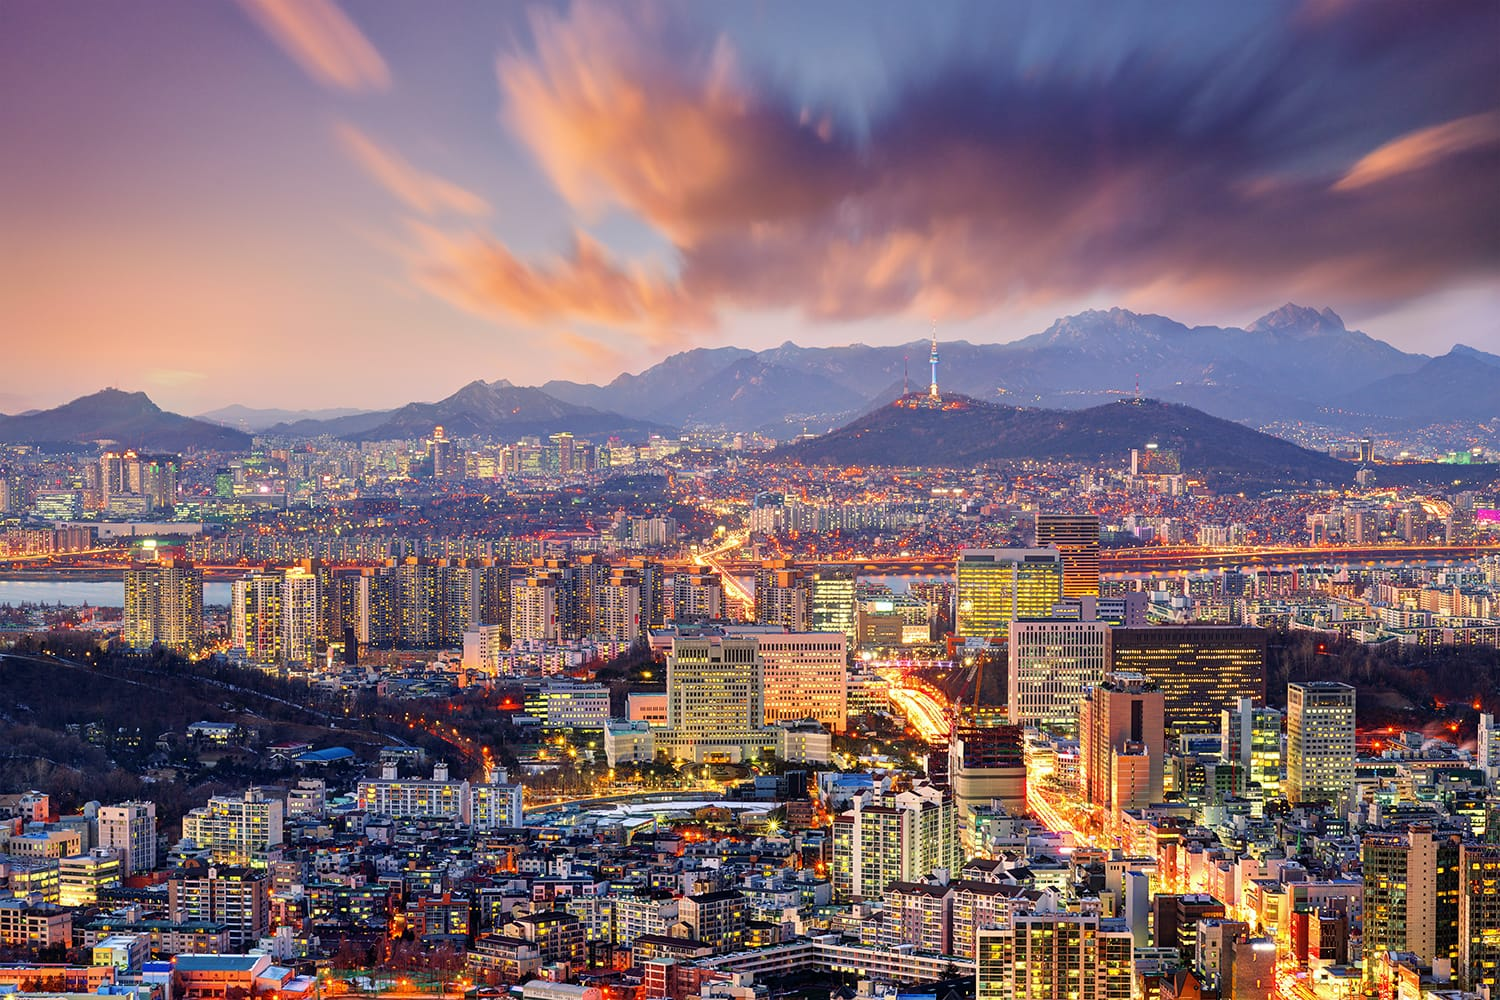 Sunset view of Seoul in South Korea